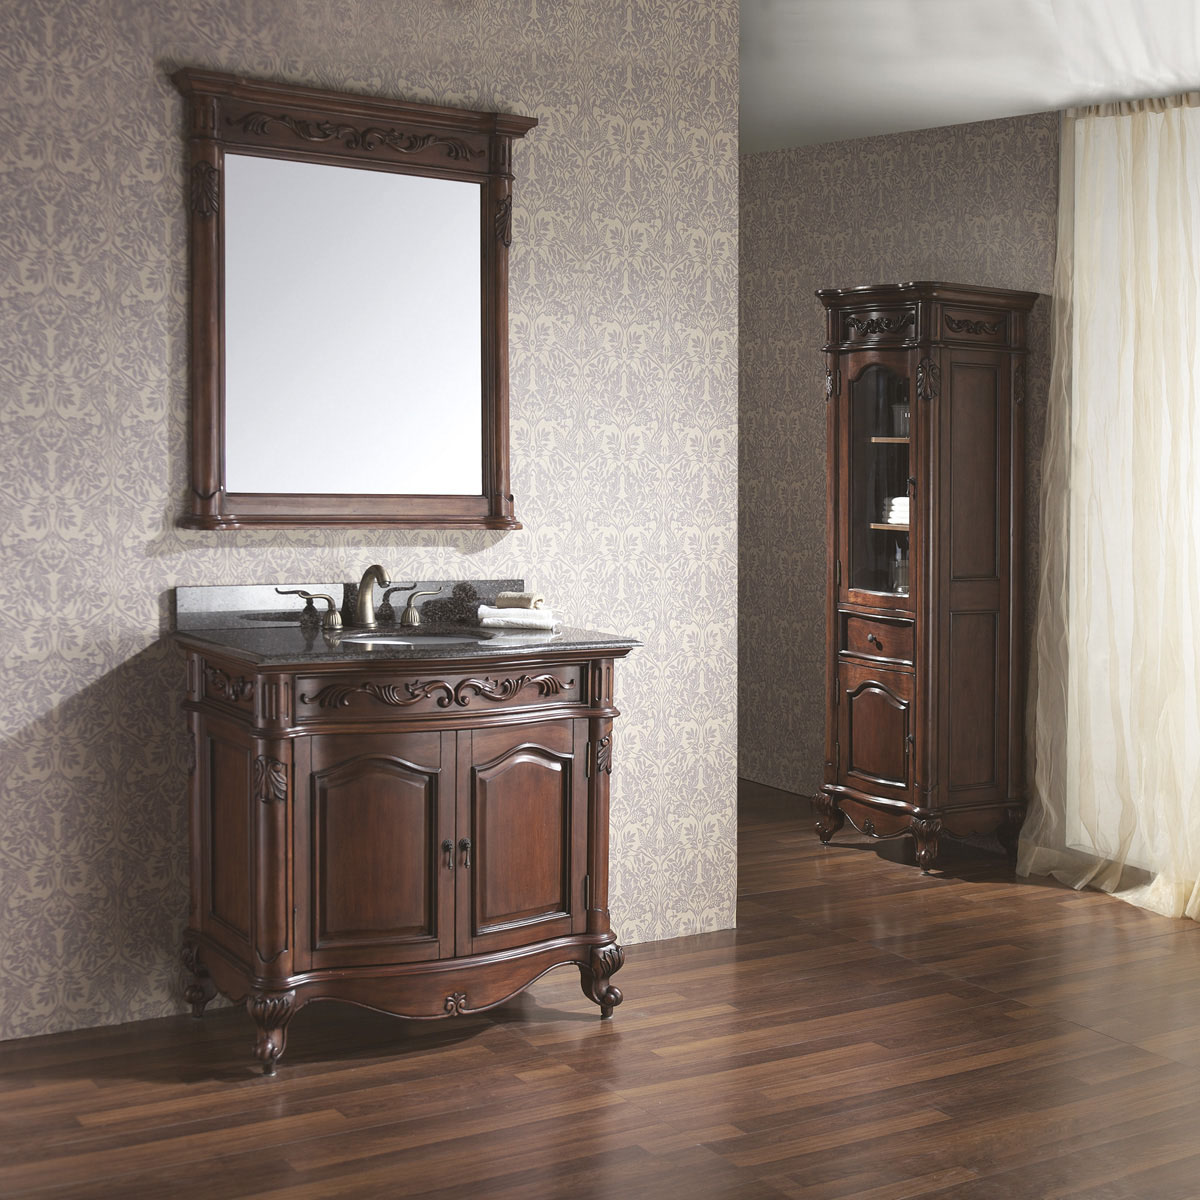 """36"""" Aversa Single Vanity - With optional mirror and linen cabinet"""